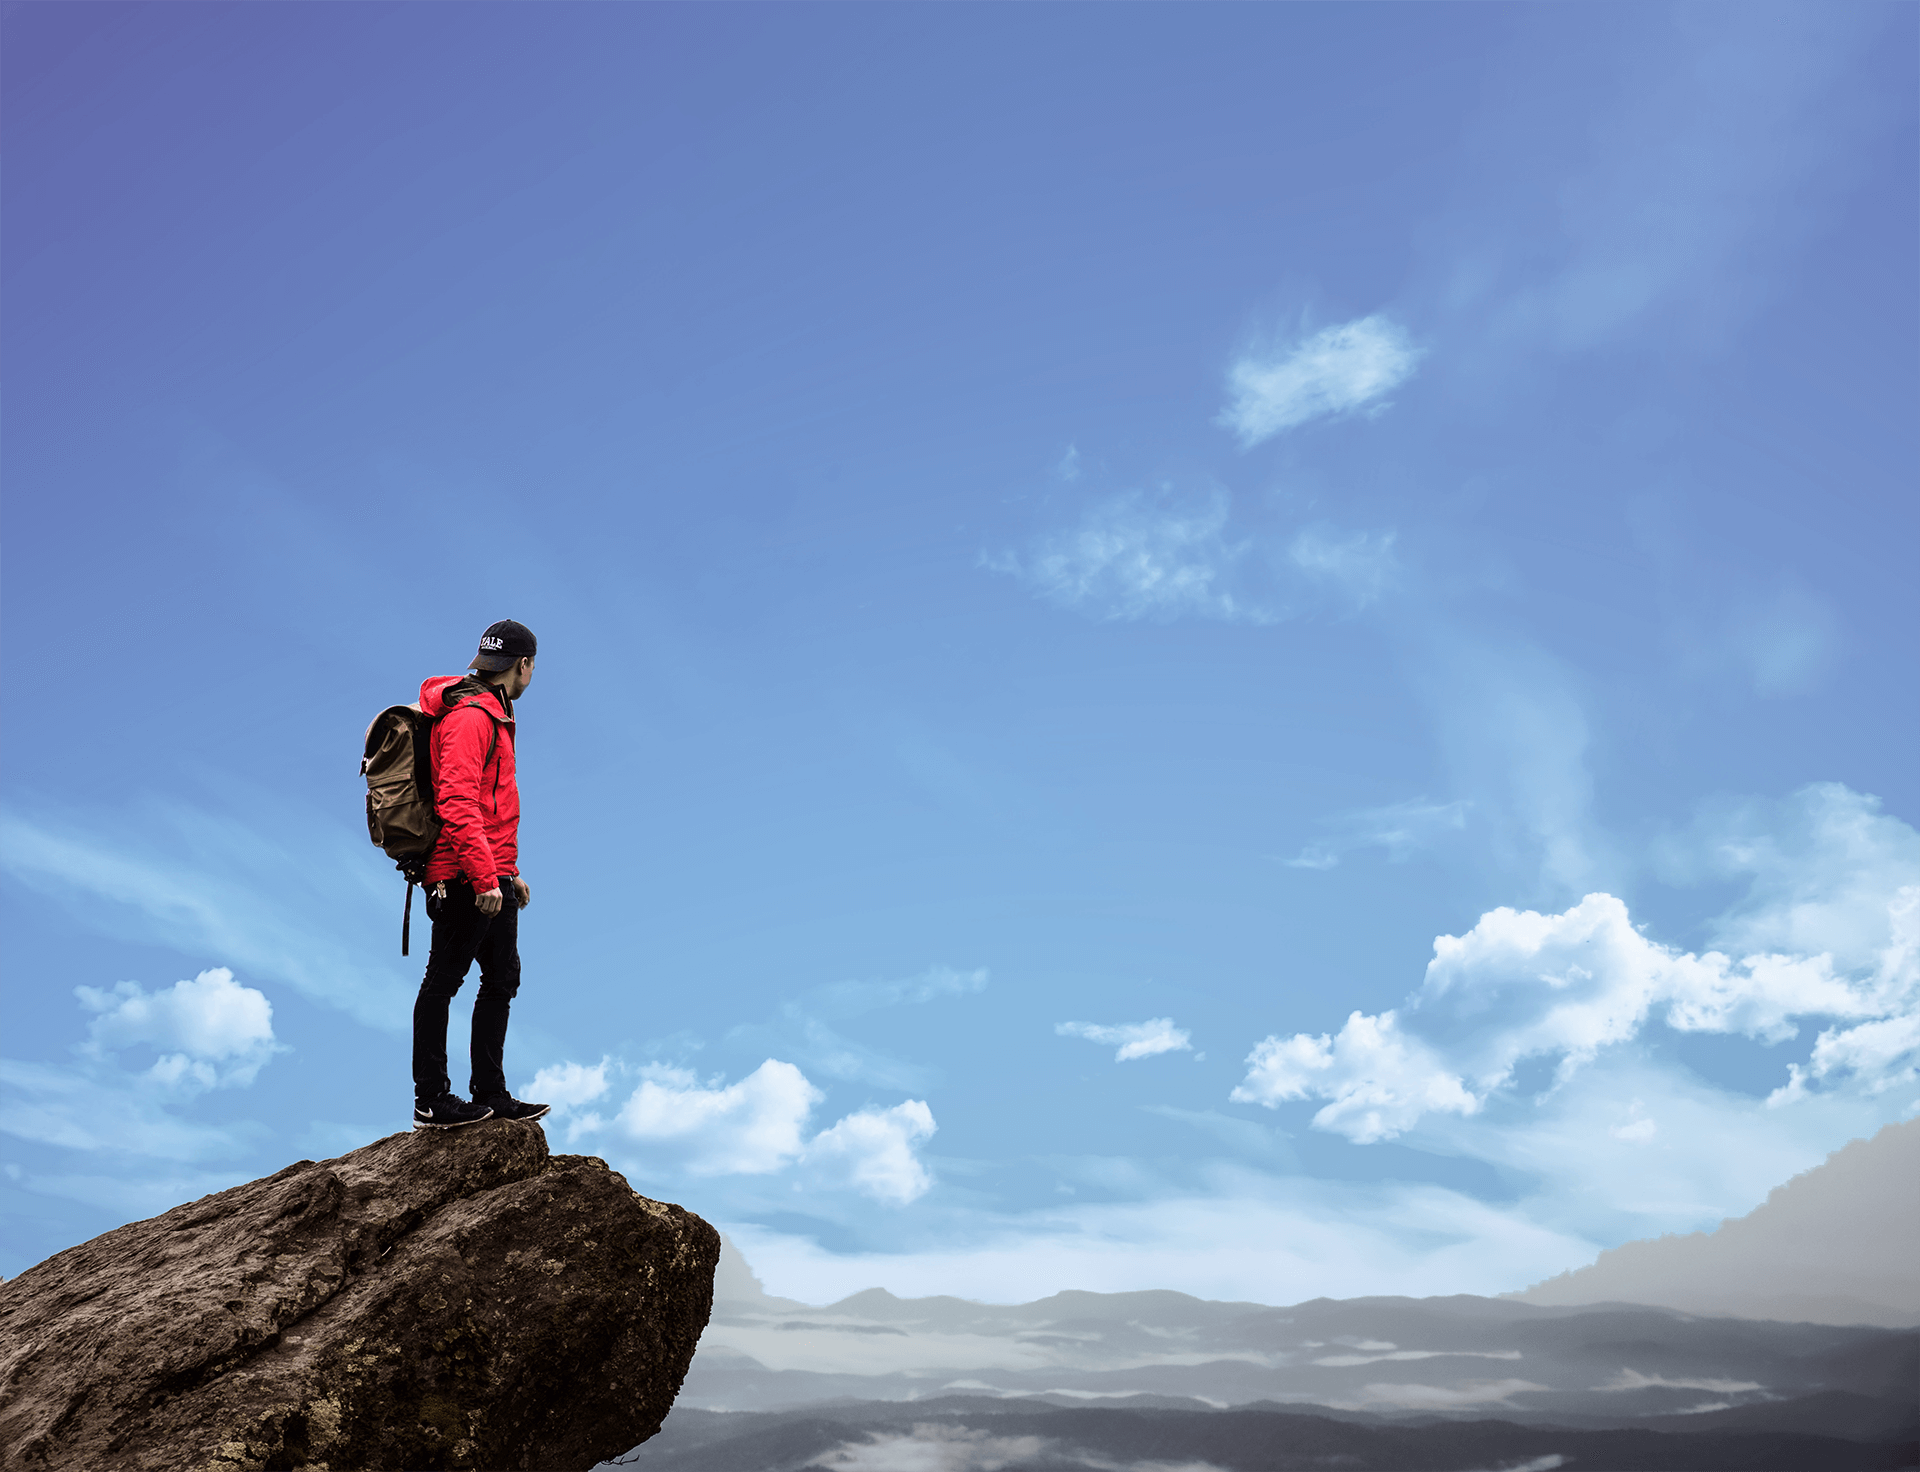 Mountain climbing man to show concept of taking risks